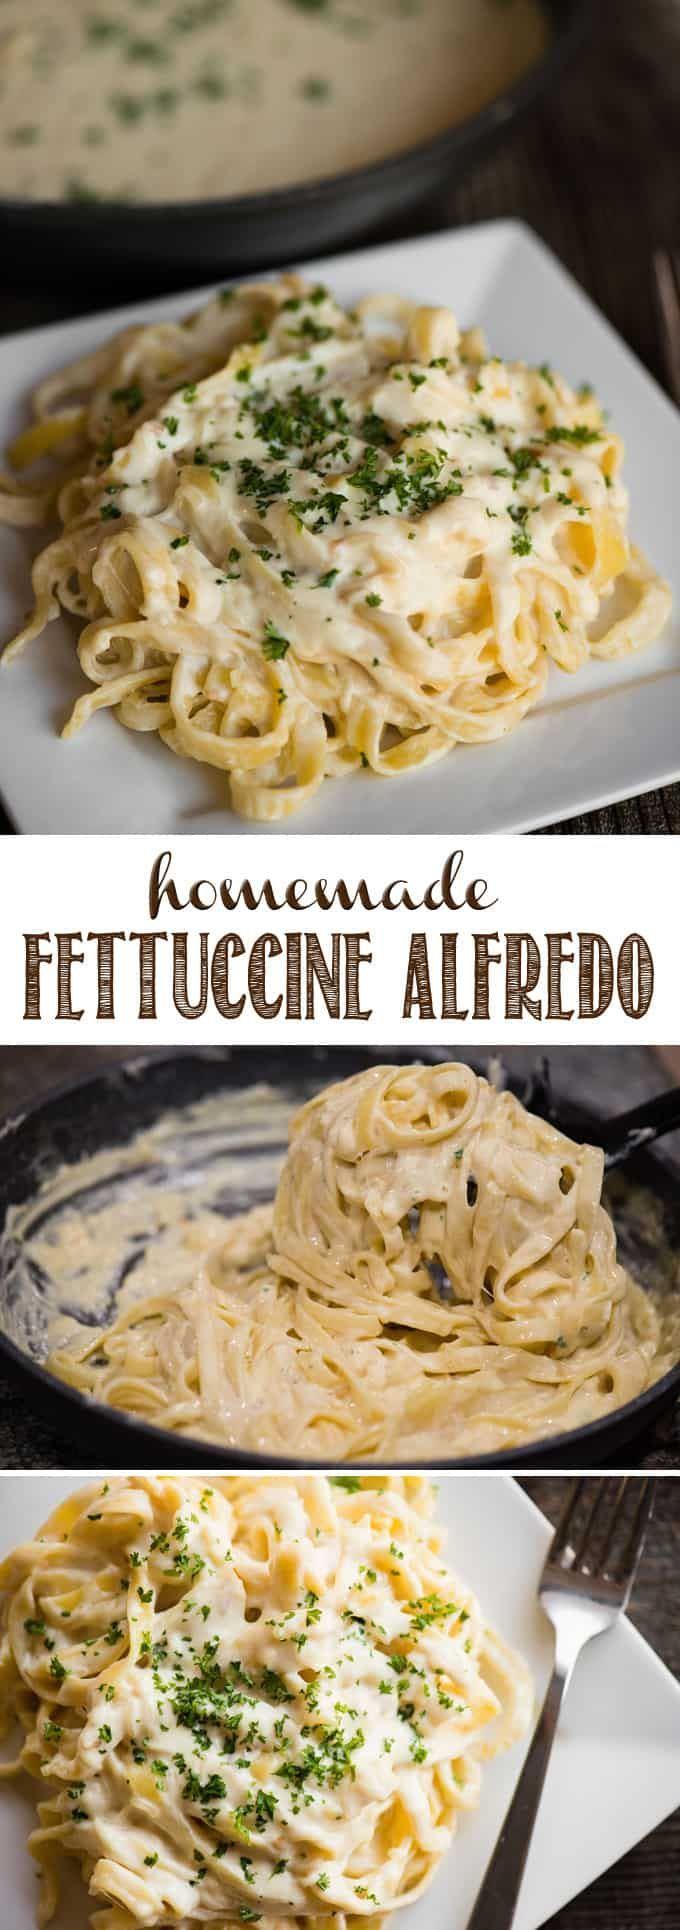 Fettuccine Alfredo, made with a rich, creamy, garlic-infused parmesan sauce and tender homemade pasta, is comfort food at it's finest! This decadent meal can be served on it's own, or topped with cajun chicken or shrimp. You'll never find a better Fettuccine Alfredo recipe than this one! #Fettuccine #Alfredo #FettuccineAlfredo #pasta #cheese #homemade #dinner #recipe